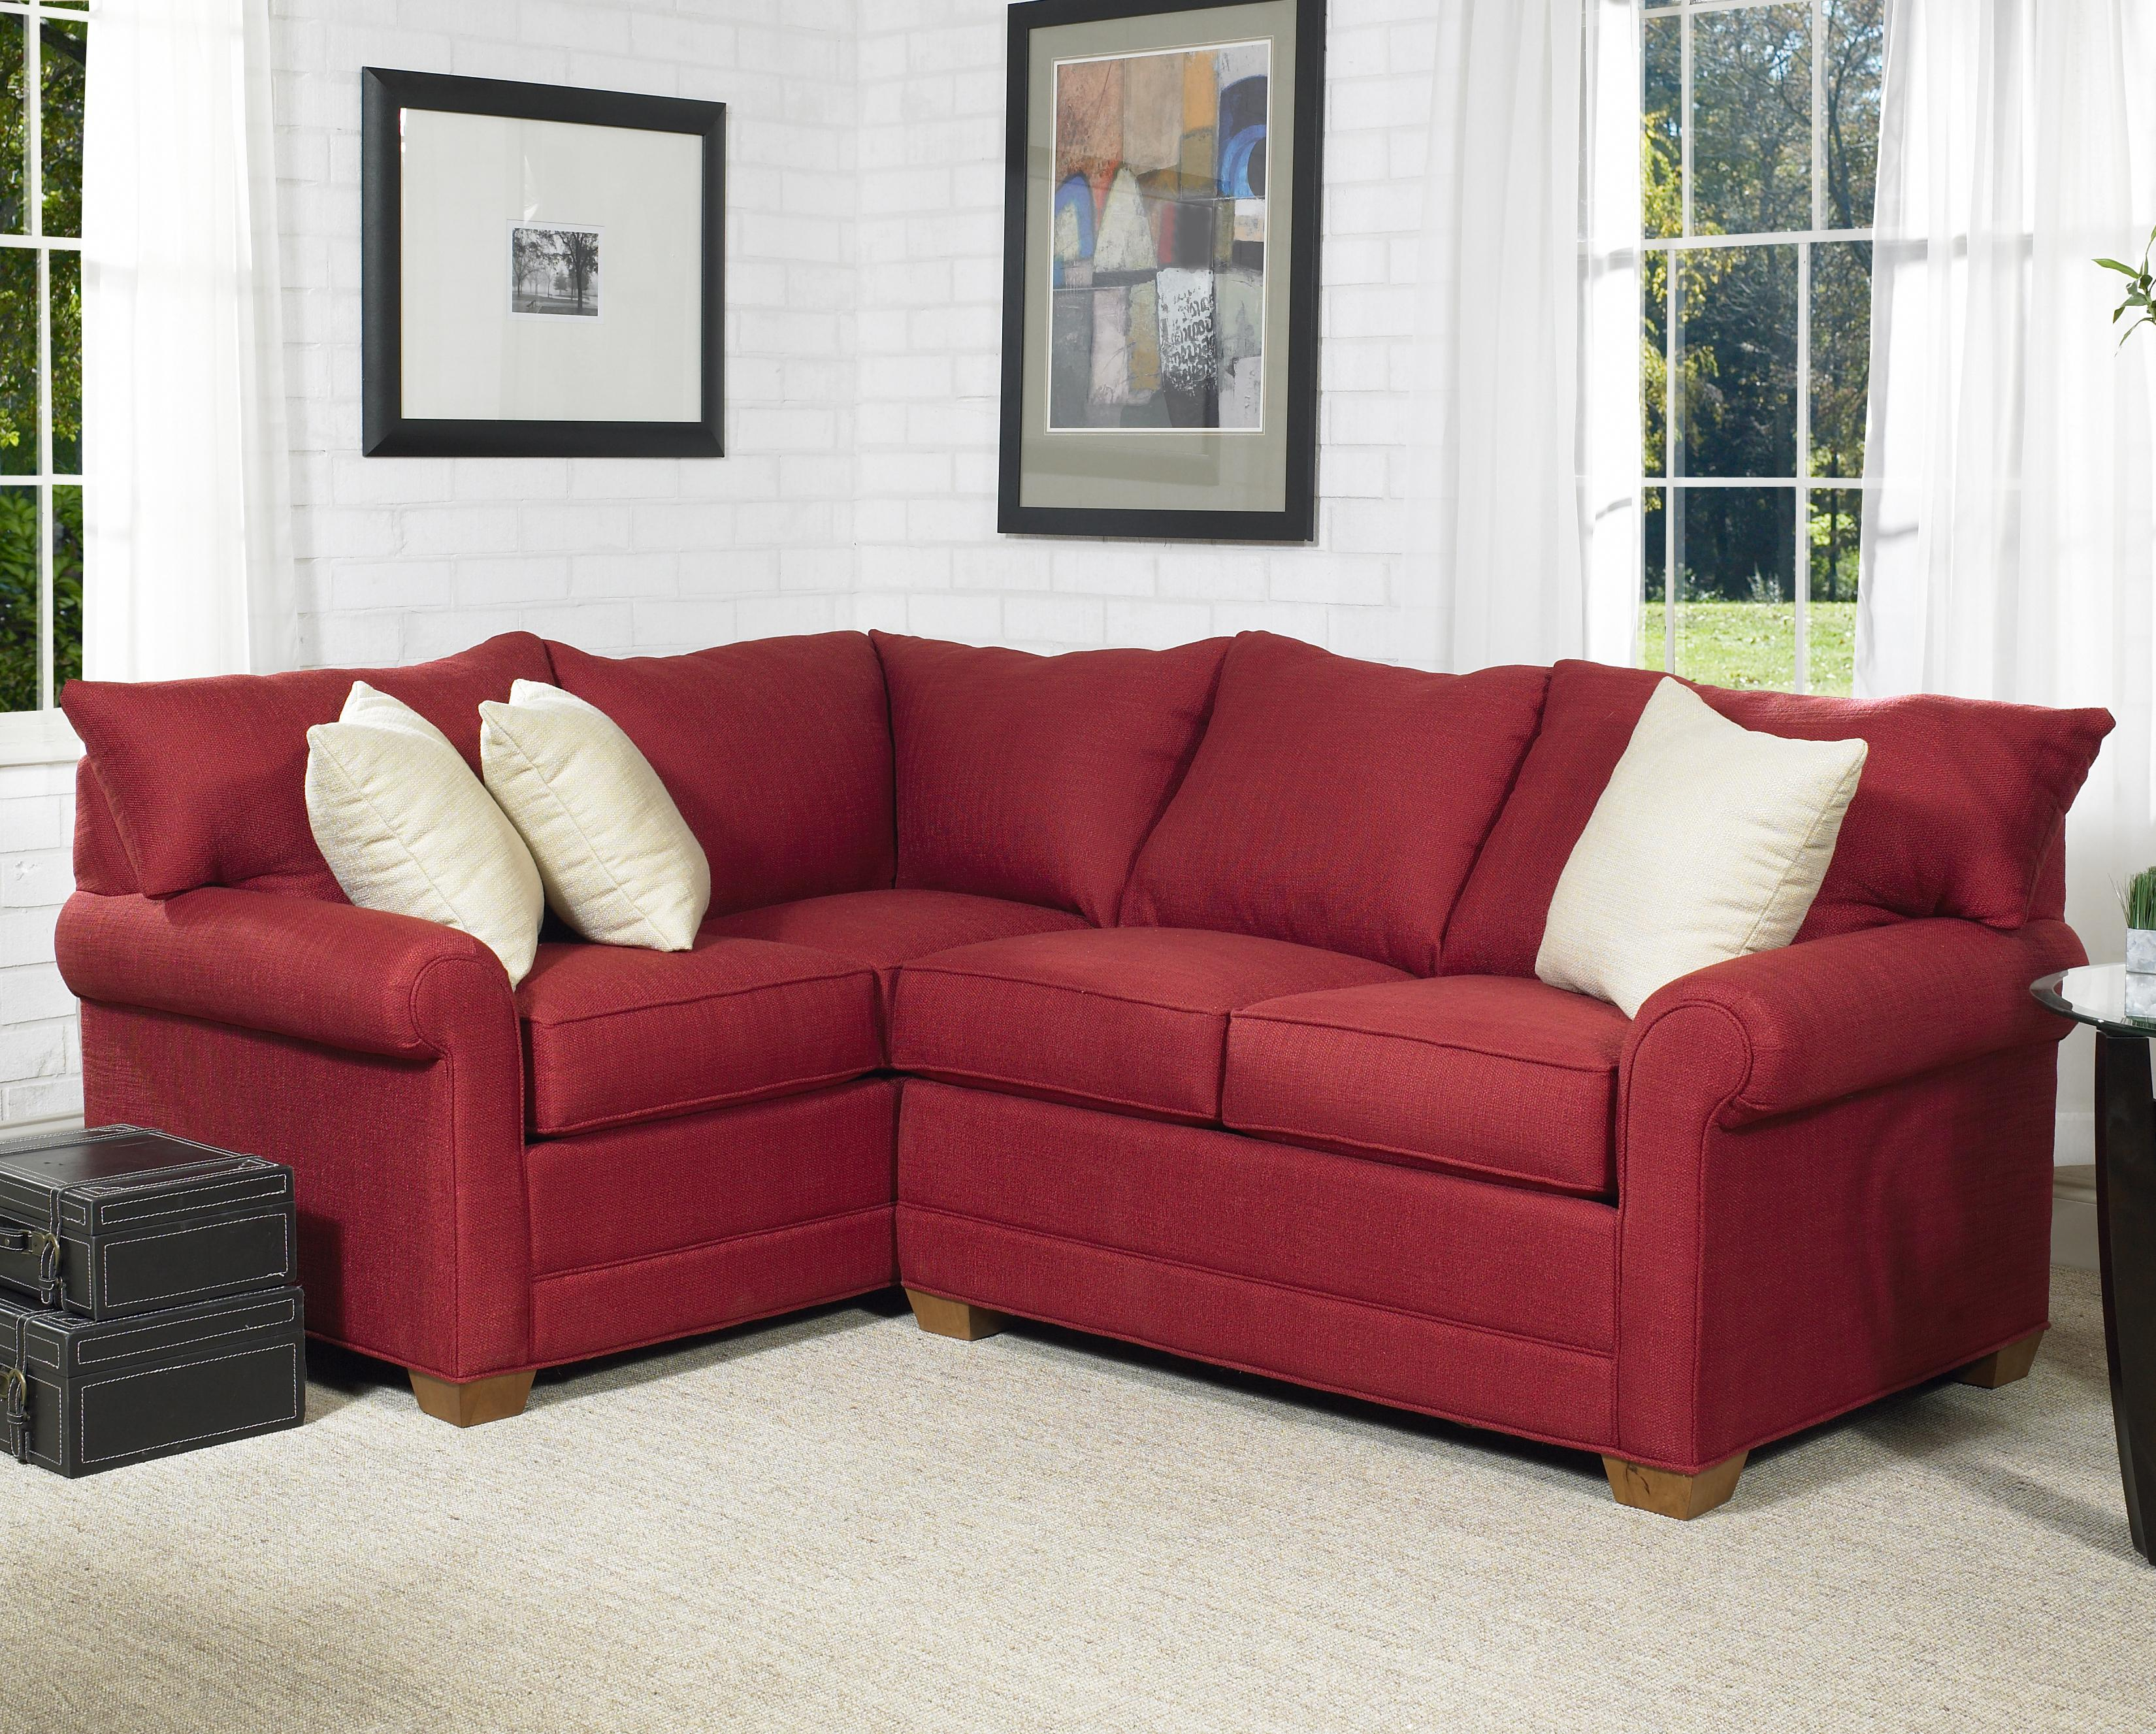 110 Loveseat Sectional Group by Lancer at Wayside Furniture